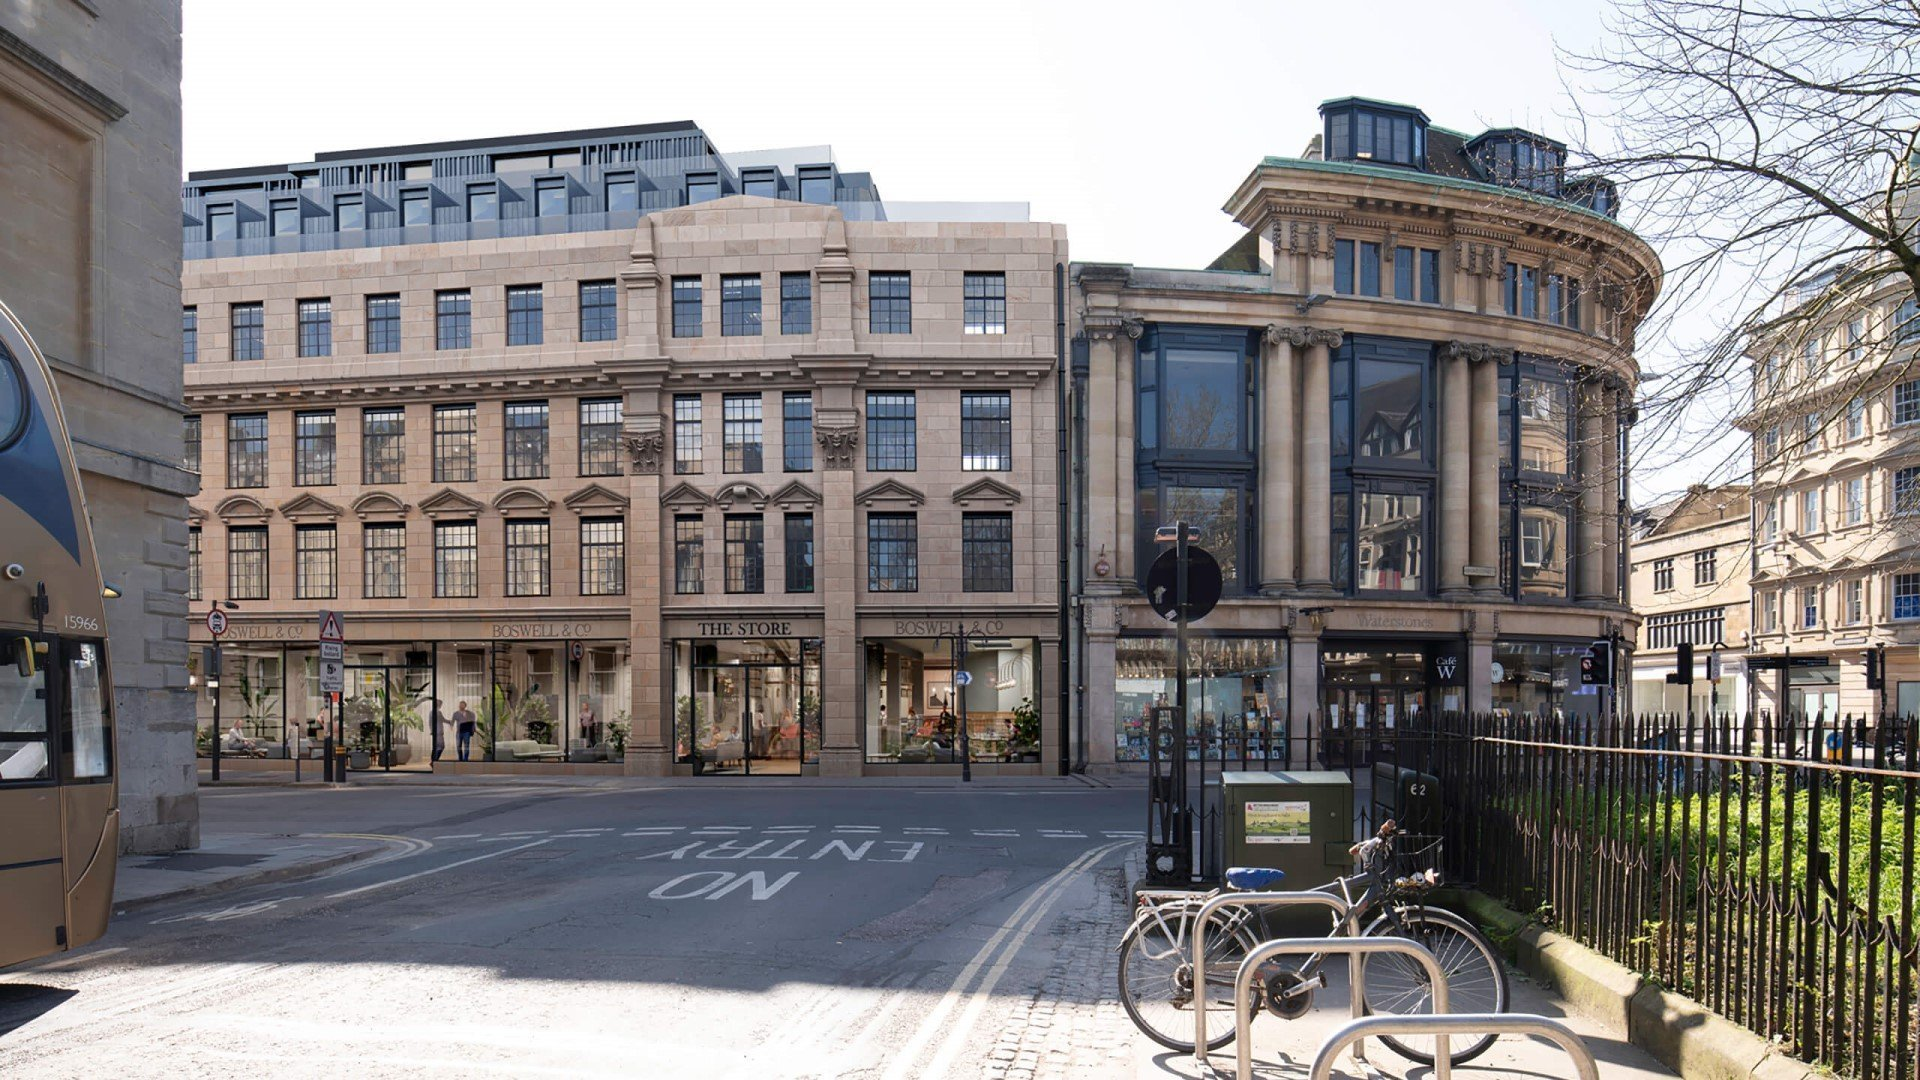 Proposals to transform Boswells building into 4-star boutique hotel unveiled